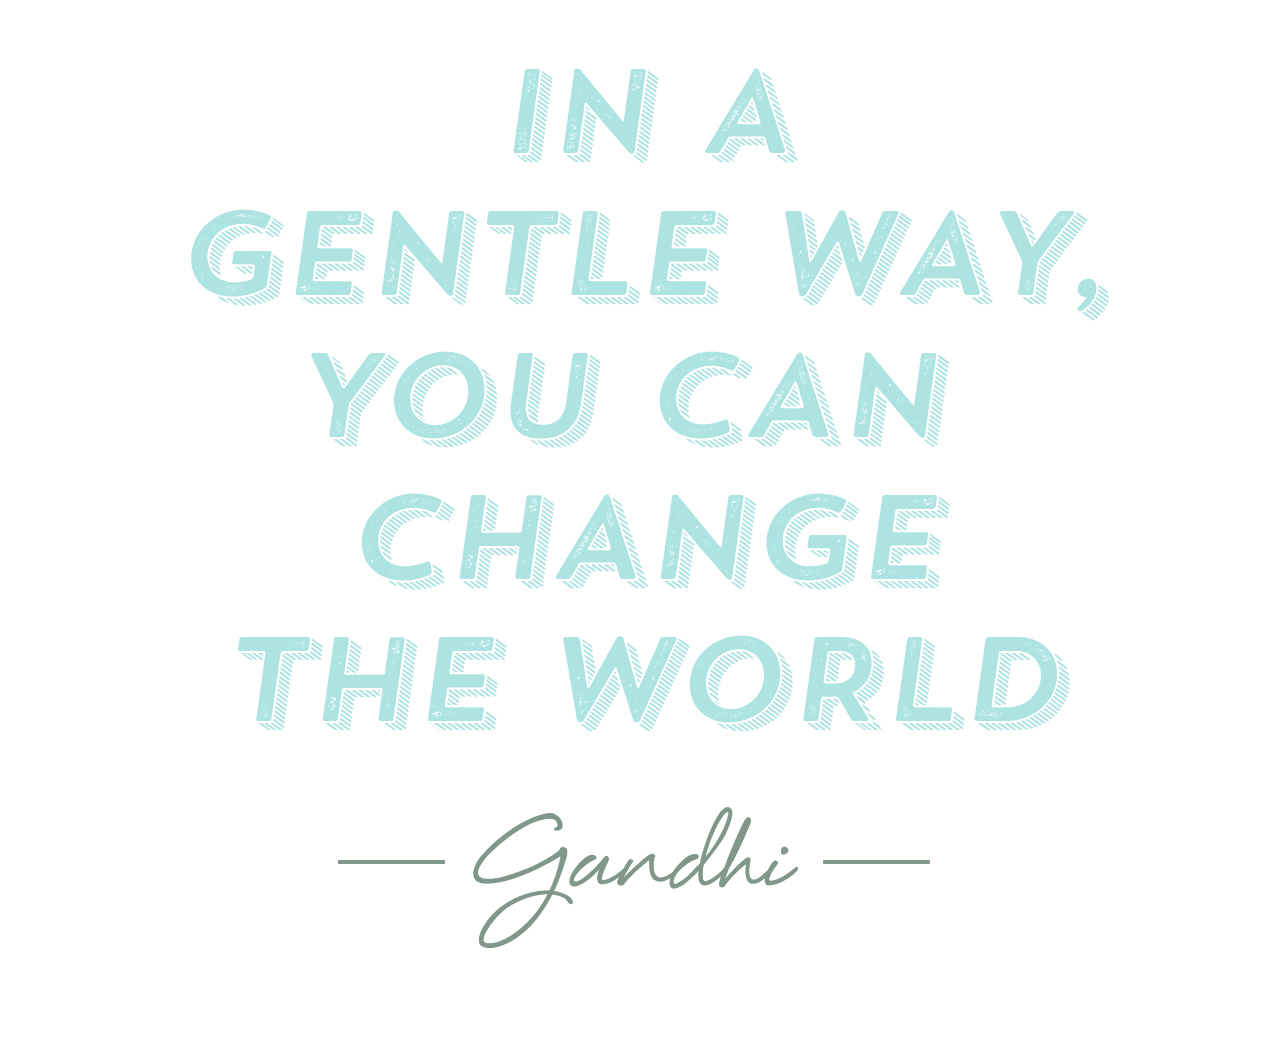 In a gentle way you can change the world - Gandhi